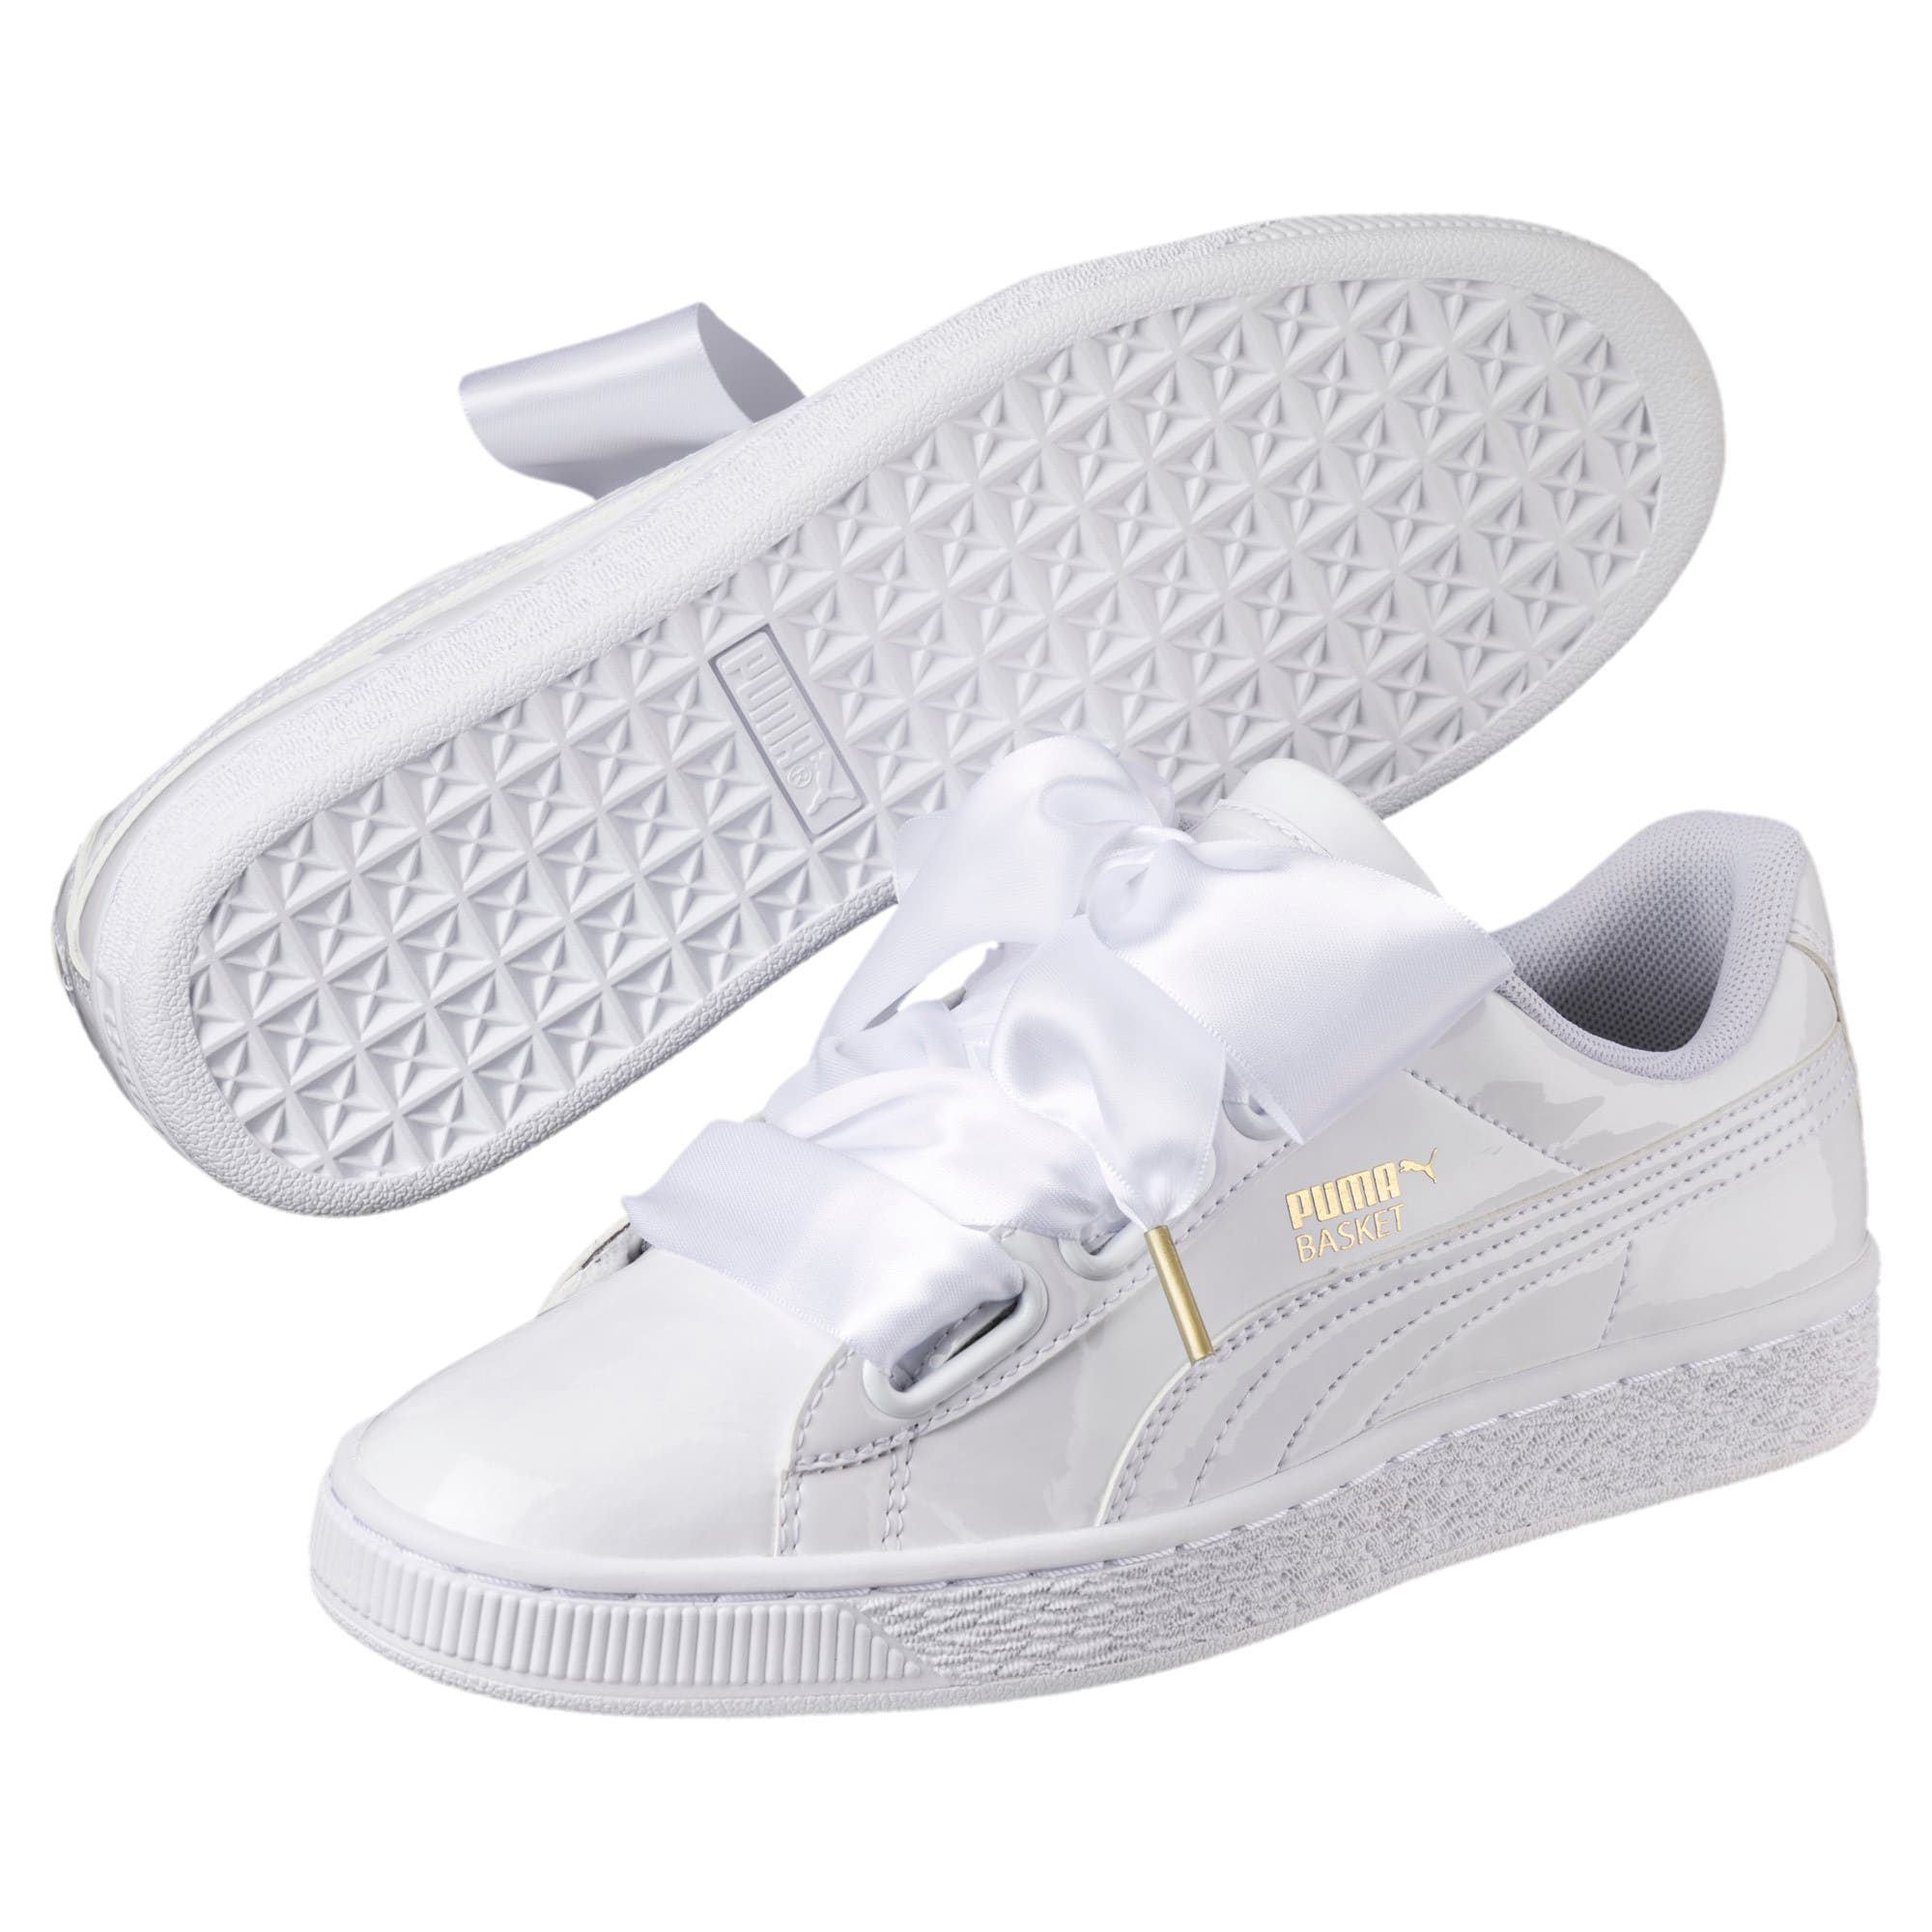 new concept 6612e 5920c Basket Heart Patent Women's Sneakers